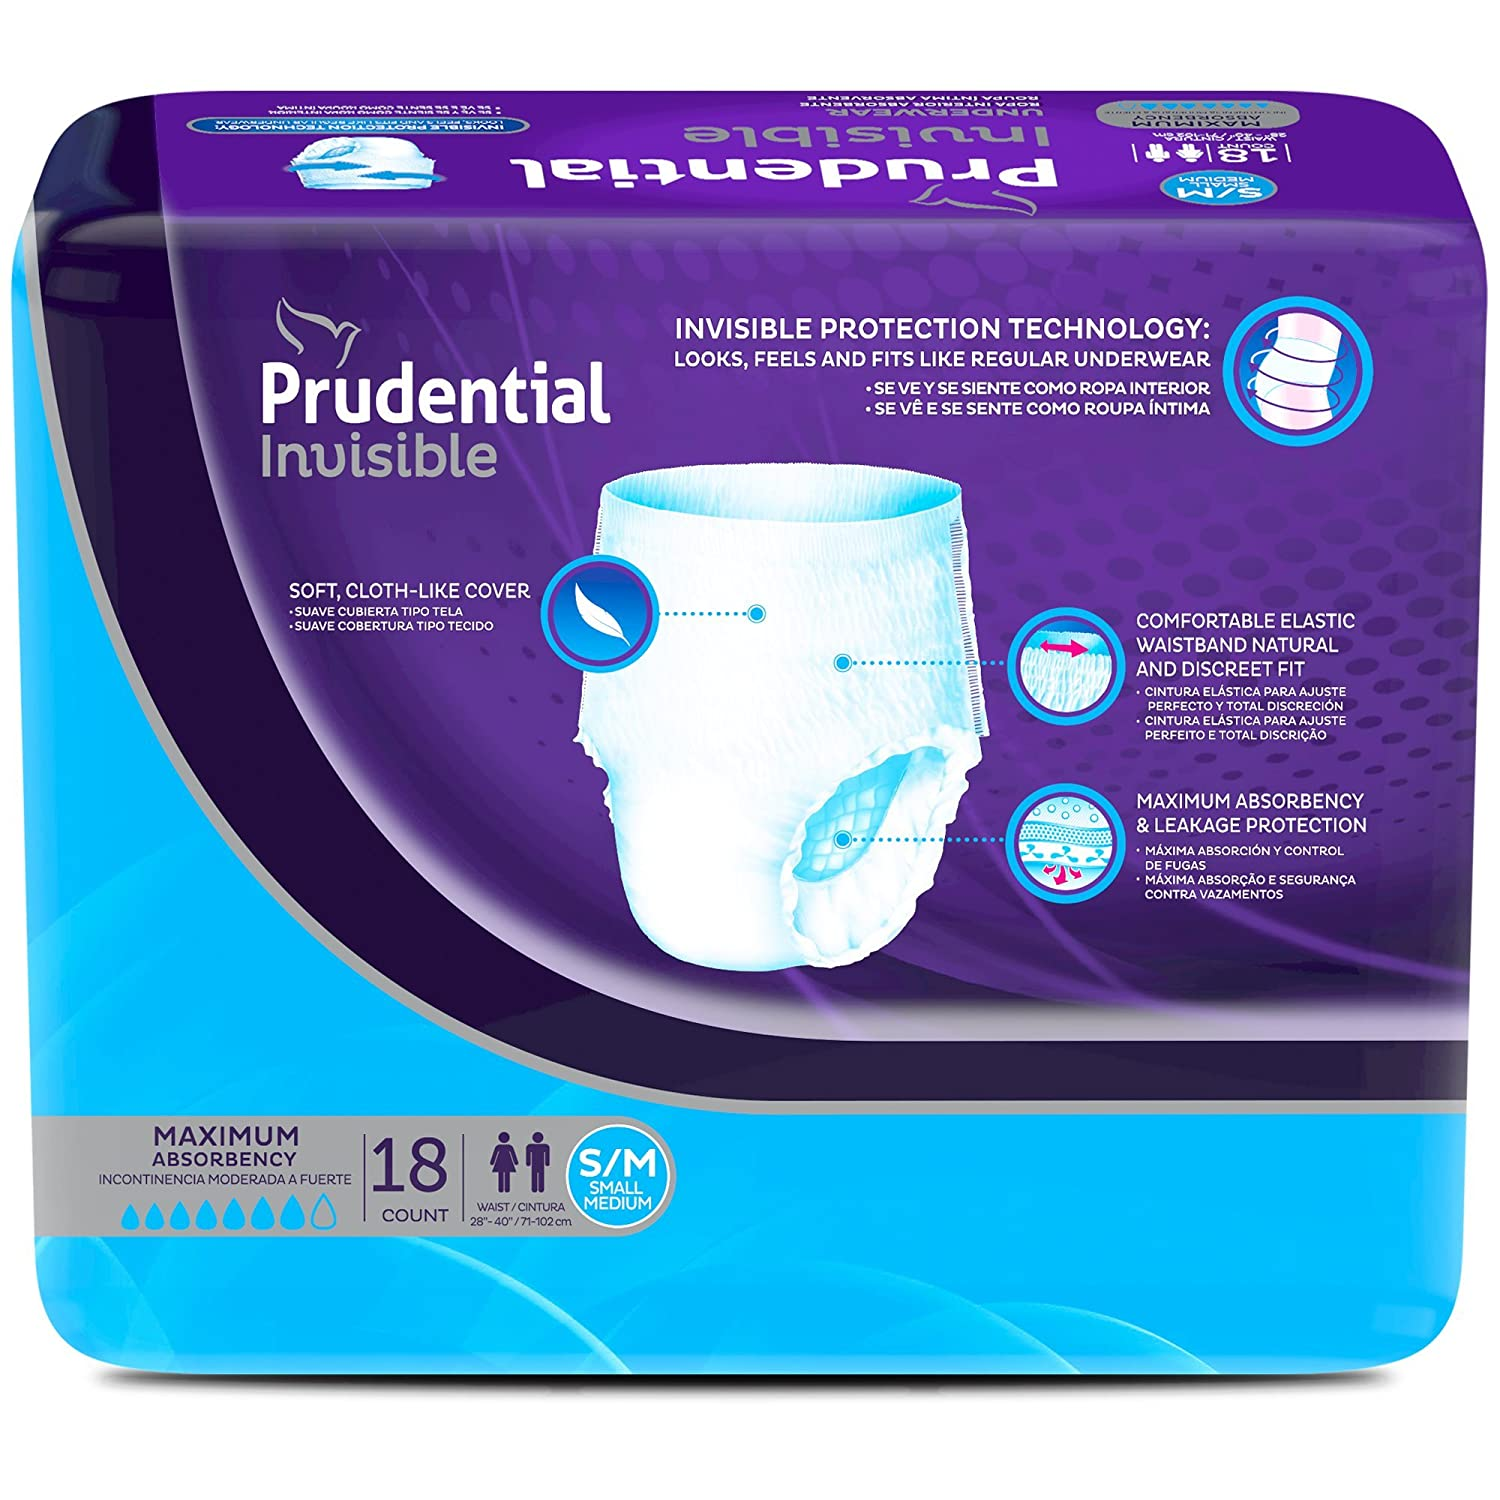 Amazon.com: Prudential Invisible Maximum Absorbency Incontinence Underwear For Men & Women, Medium 18 Count: Health & Personal Care